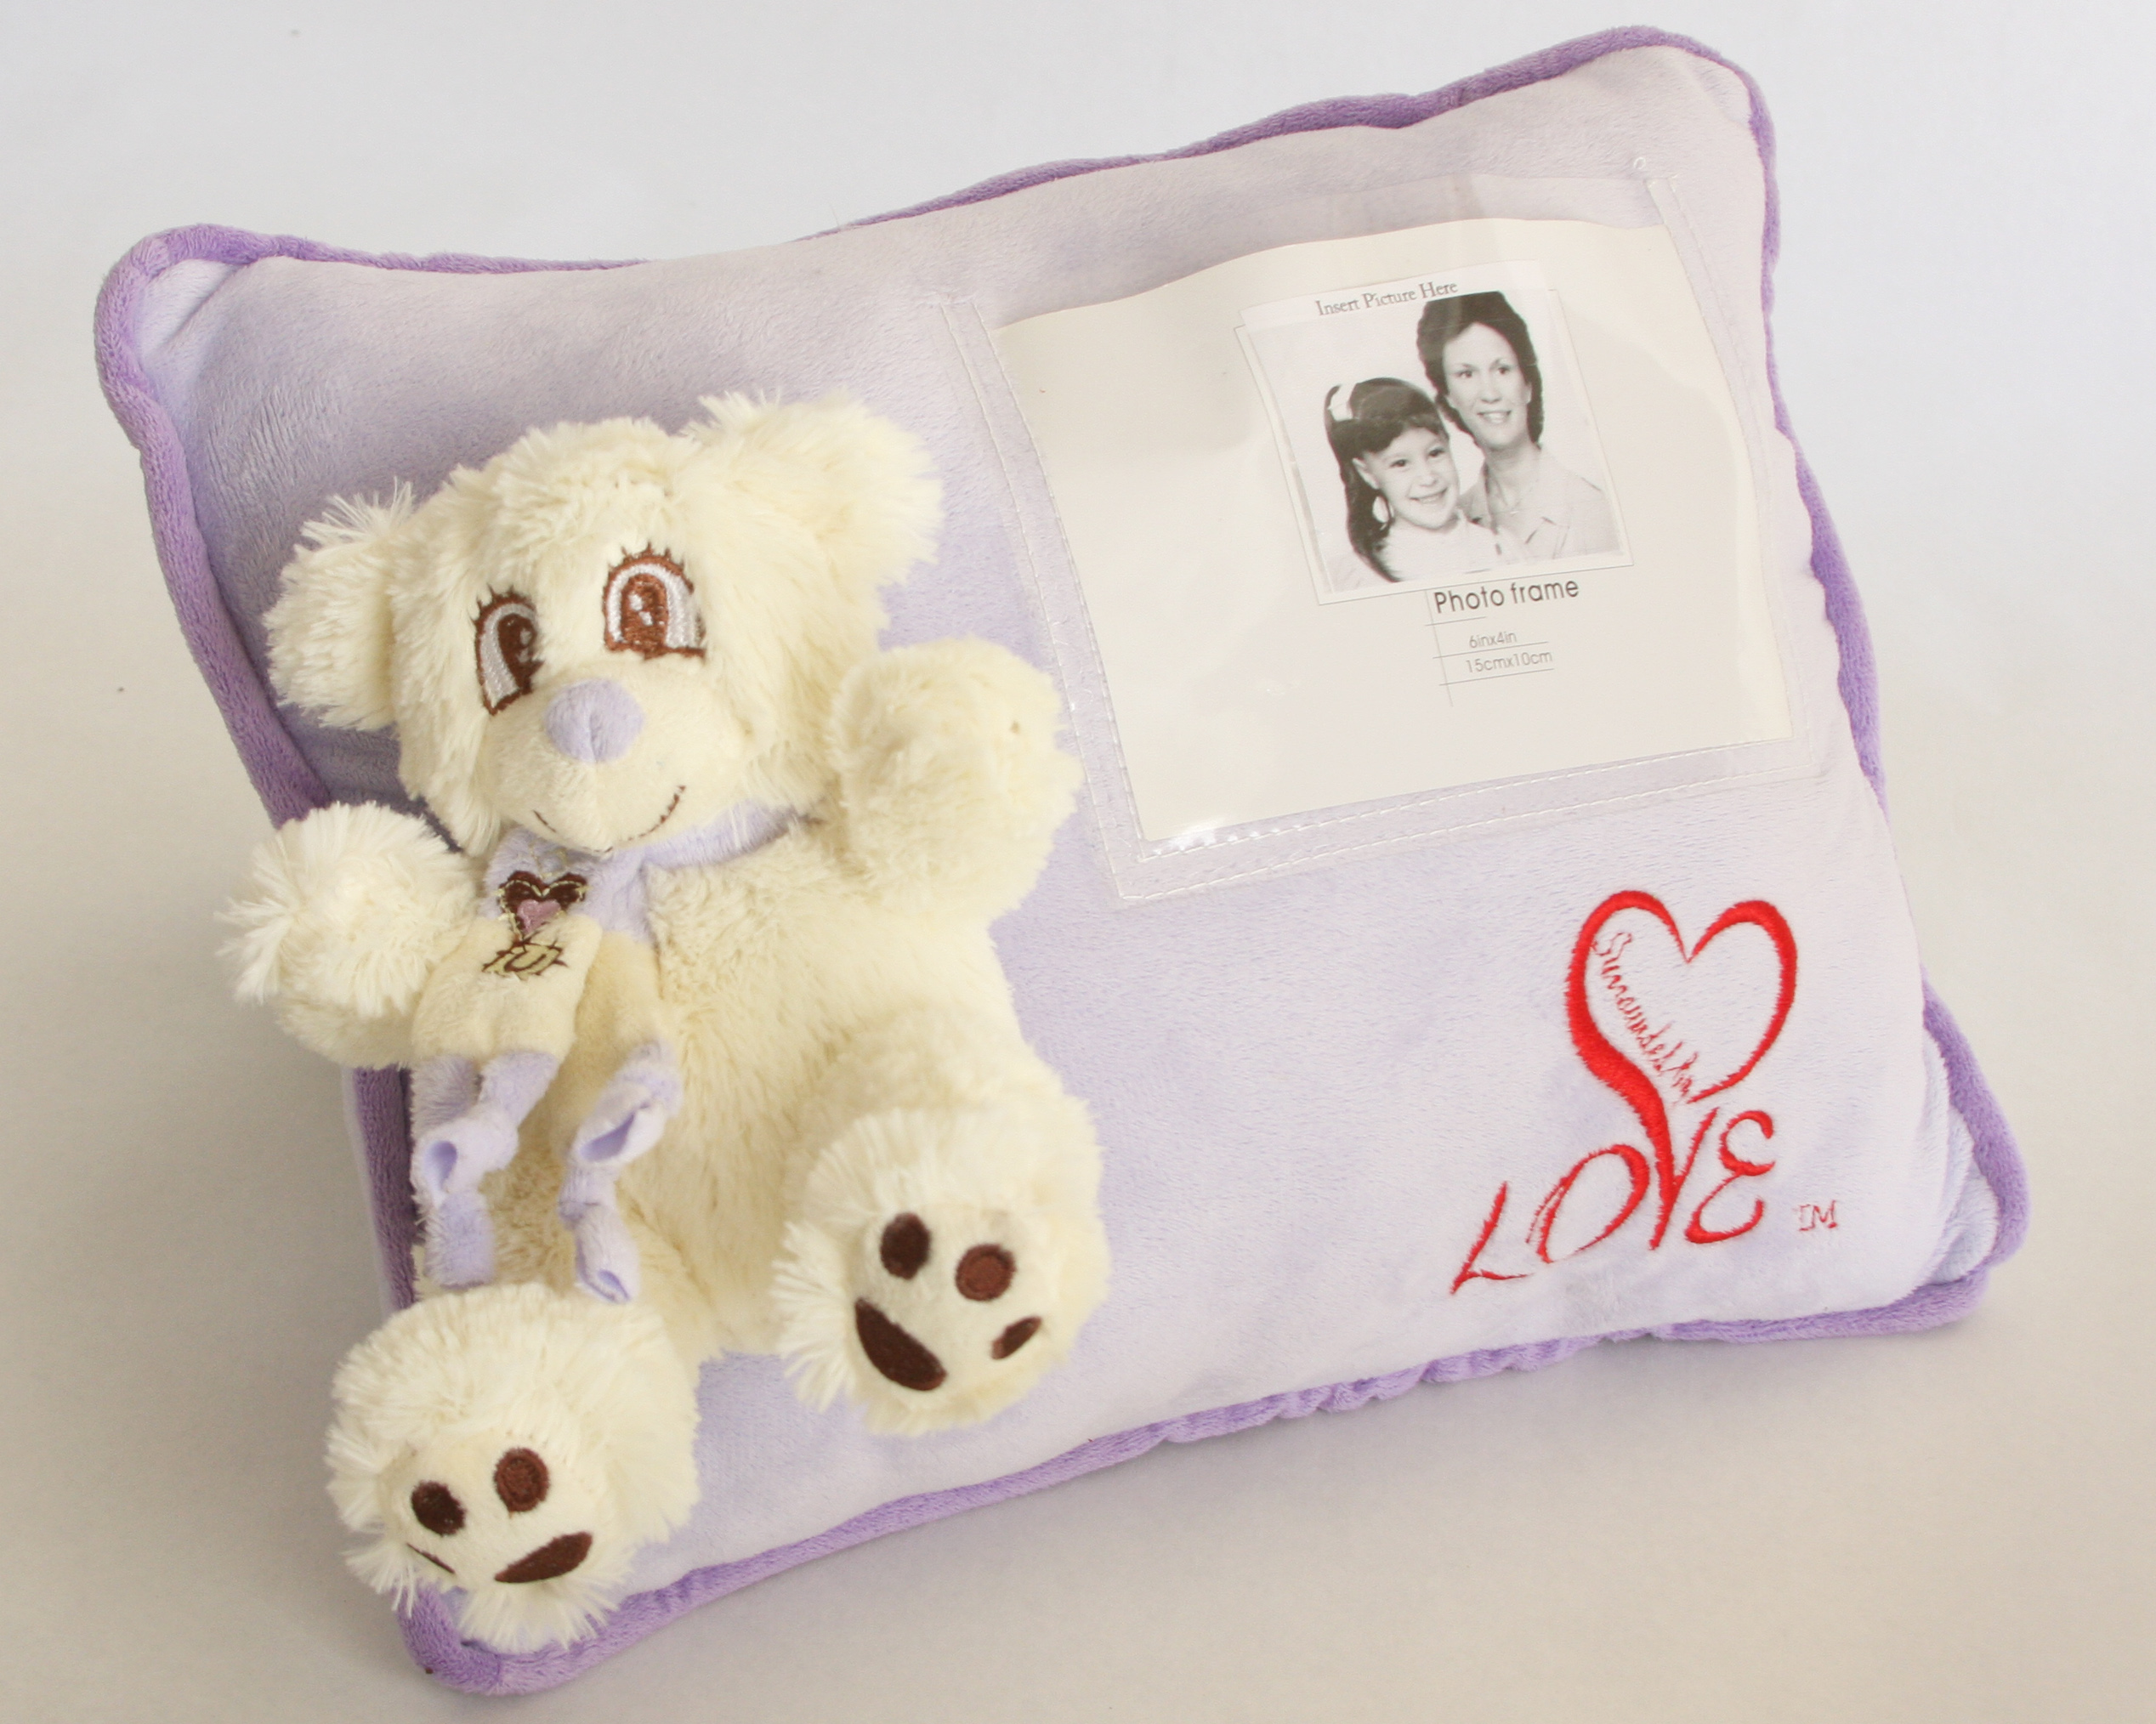 Snowflake personalized pillow Surrounded By Love